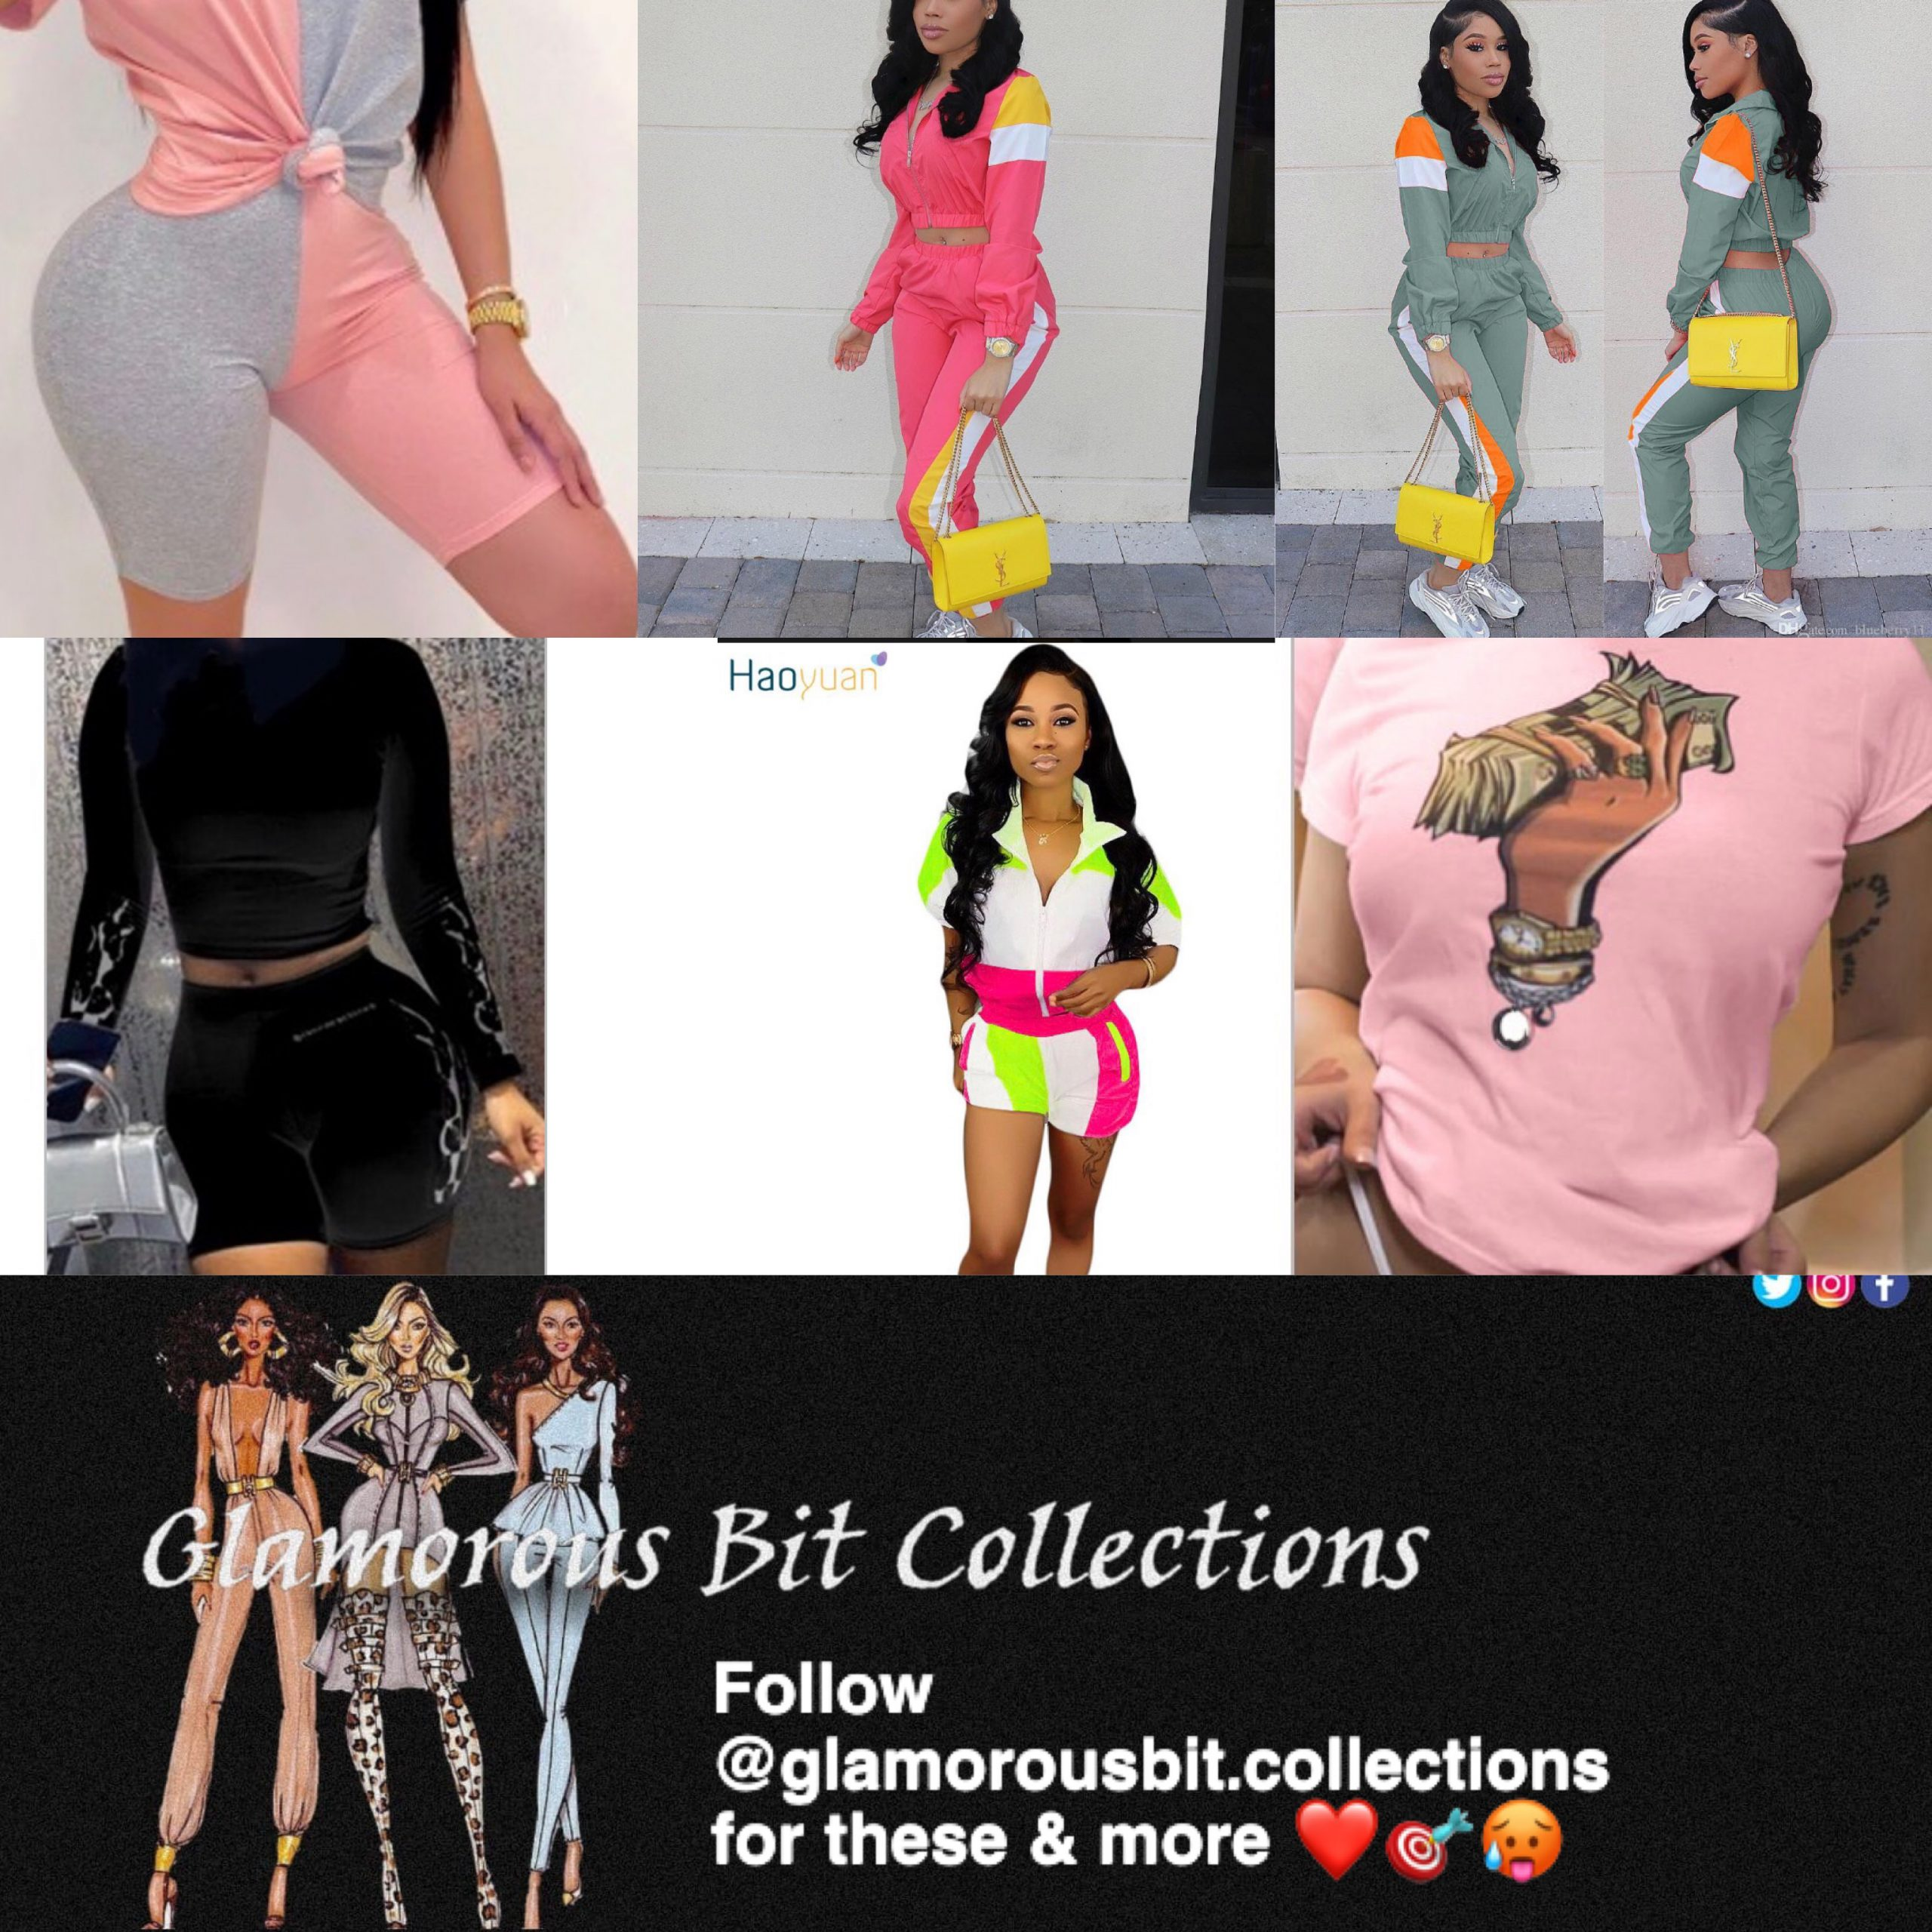 Glamorous Bit Collections